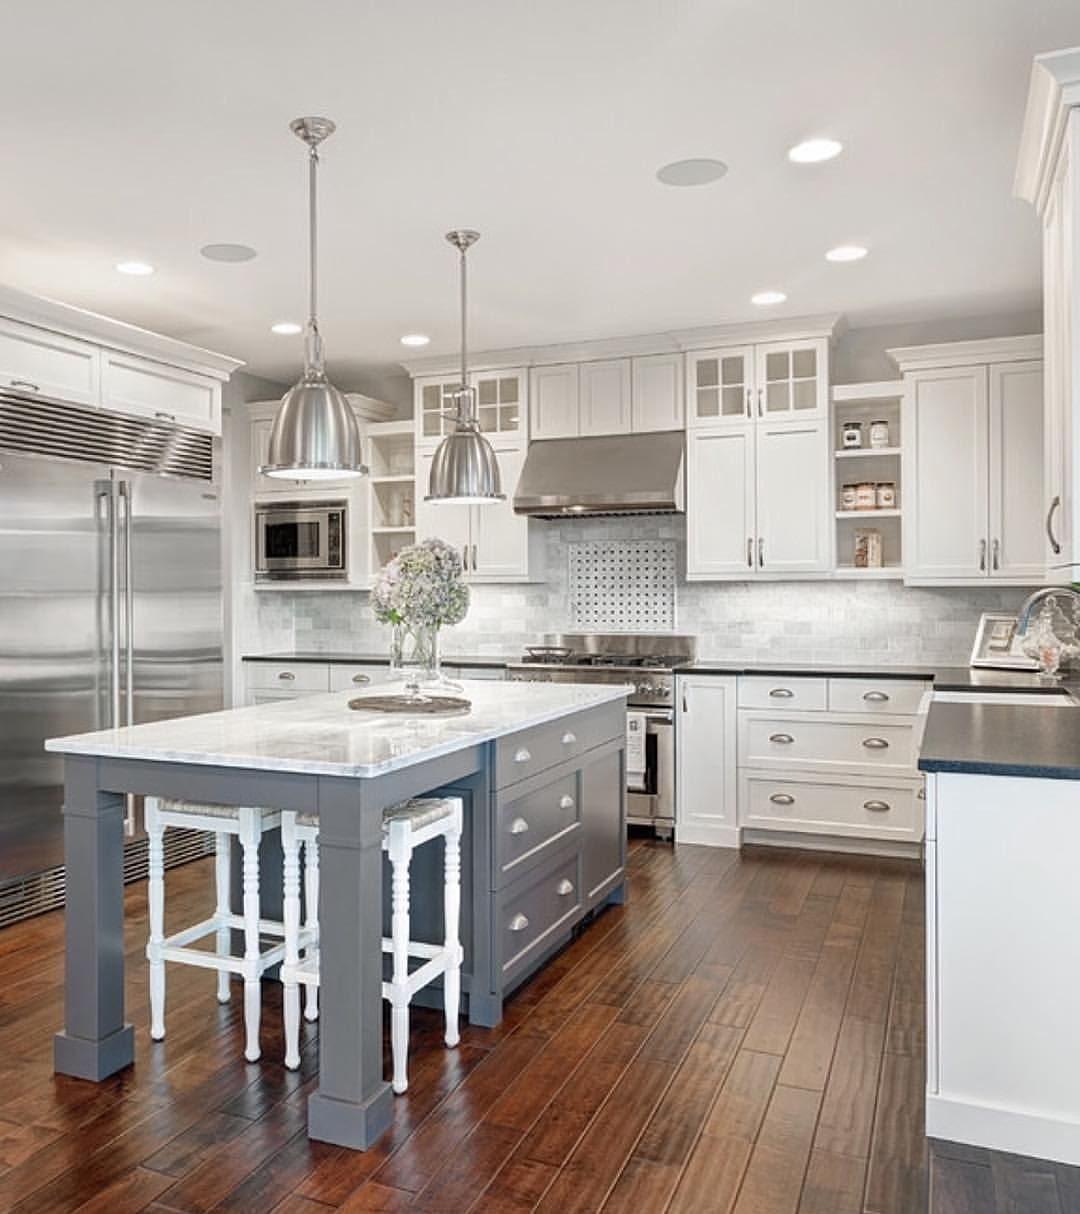 White & marble kitchen with grey island House & Home